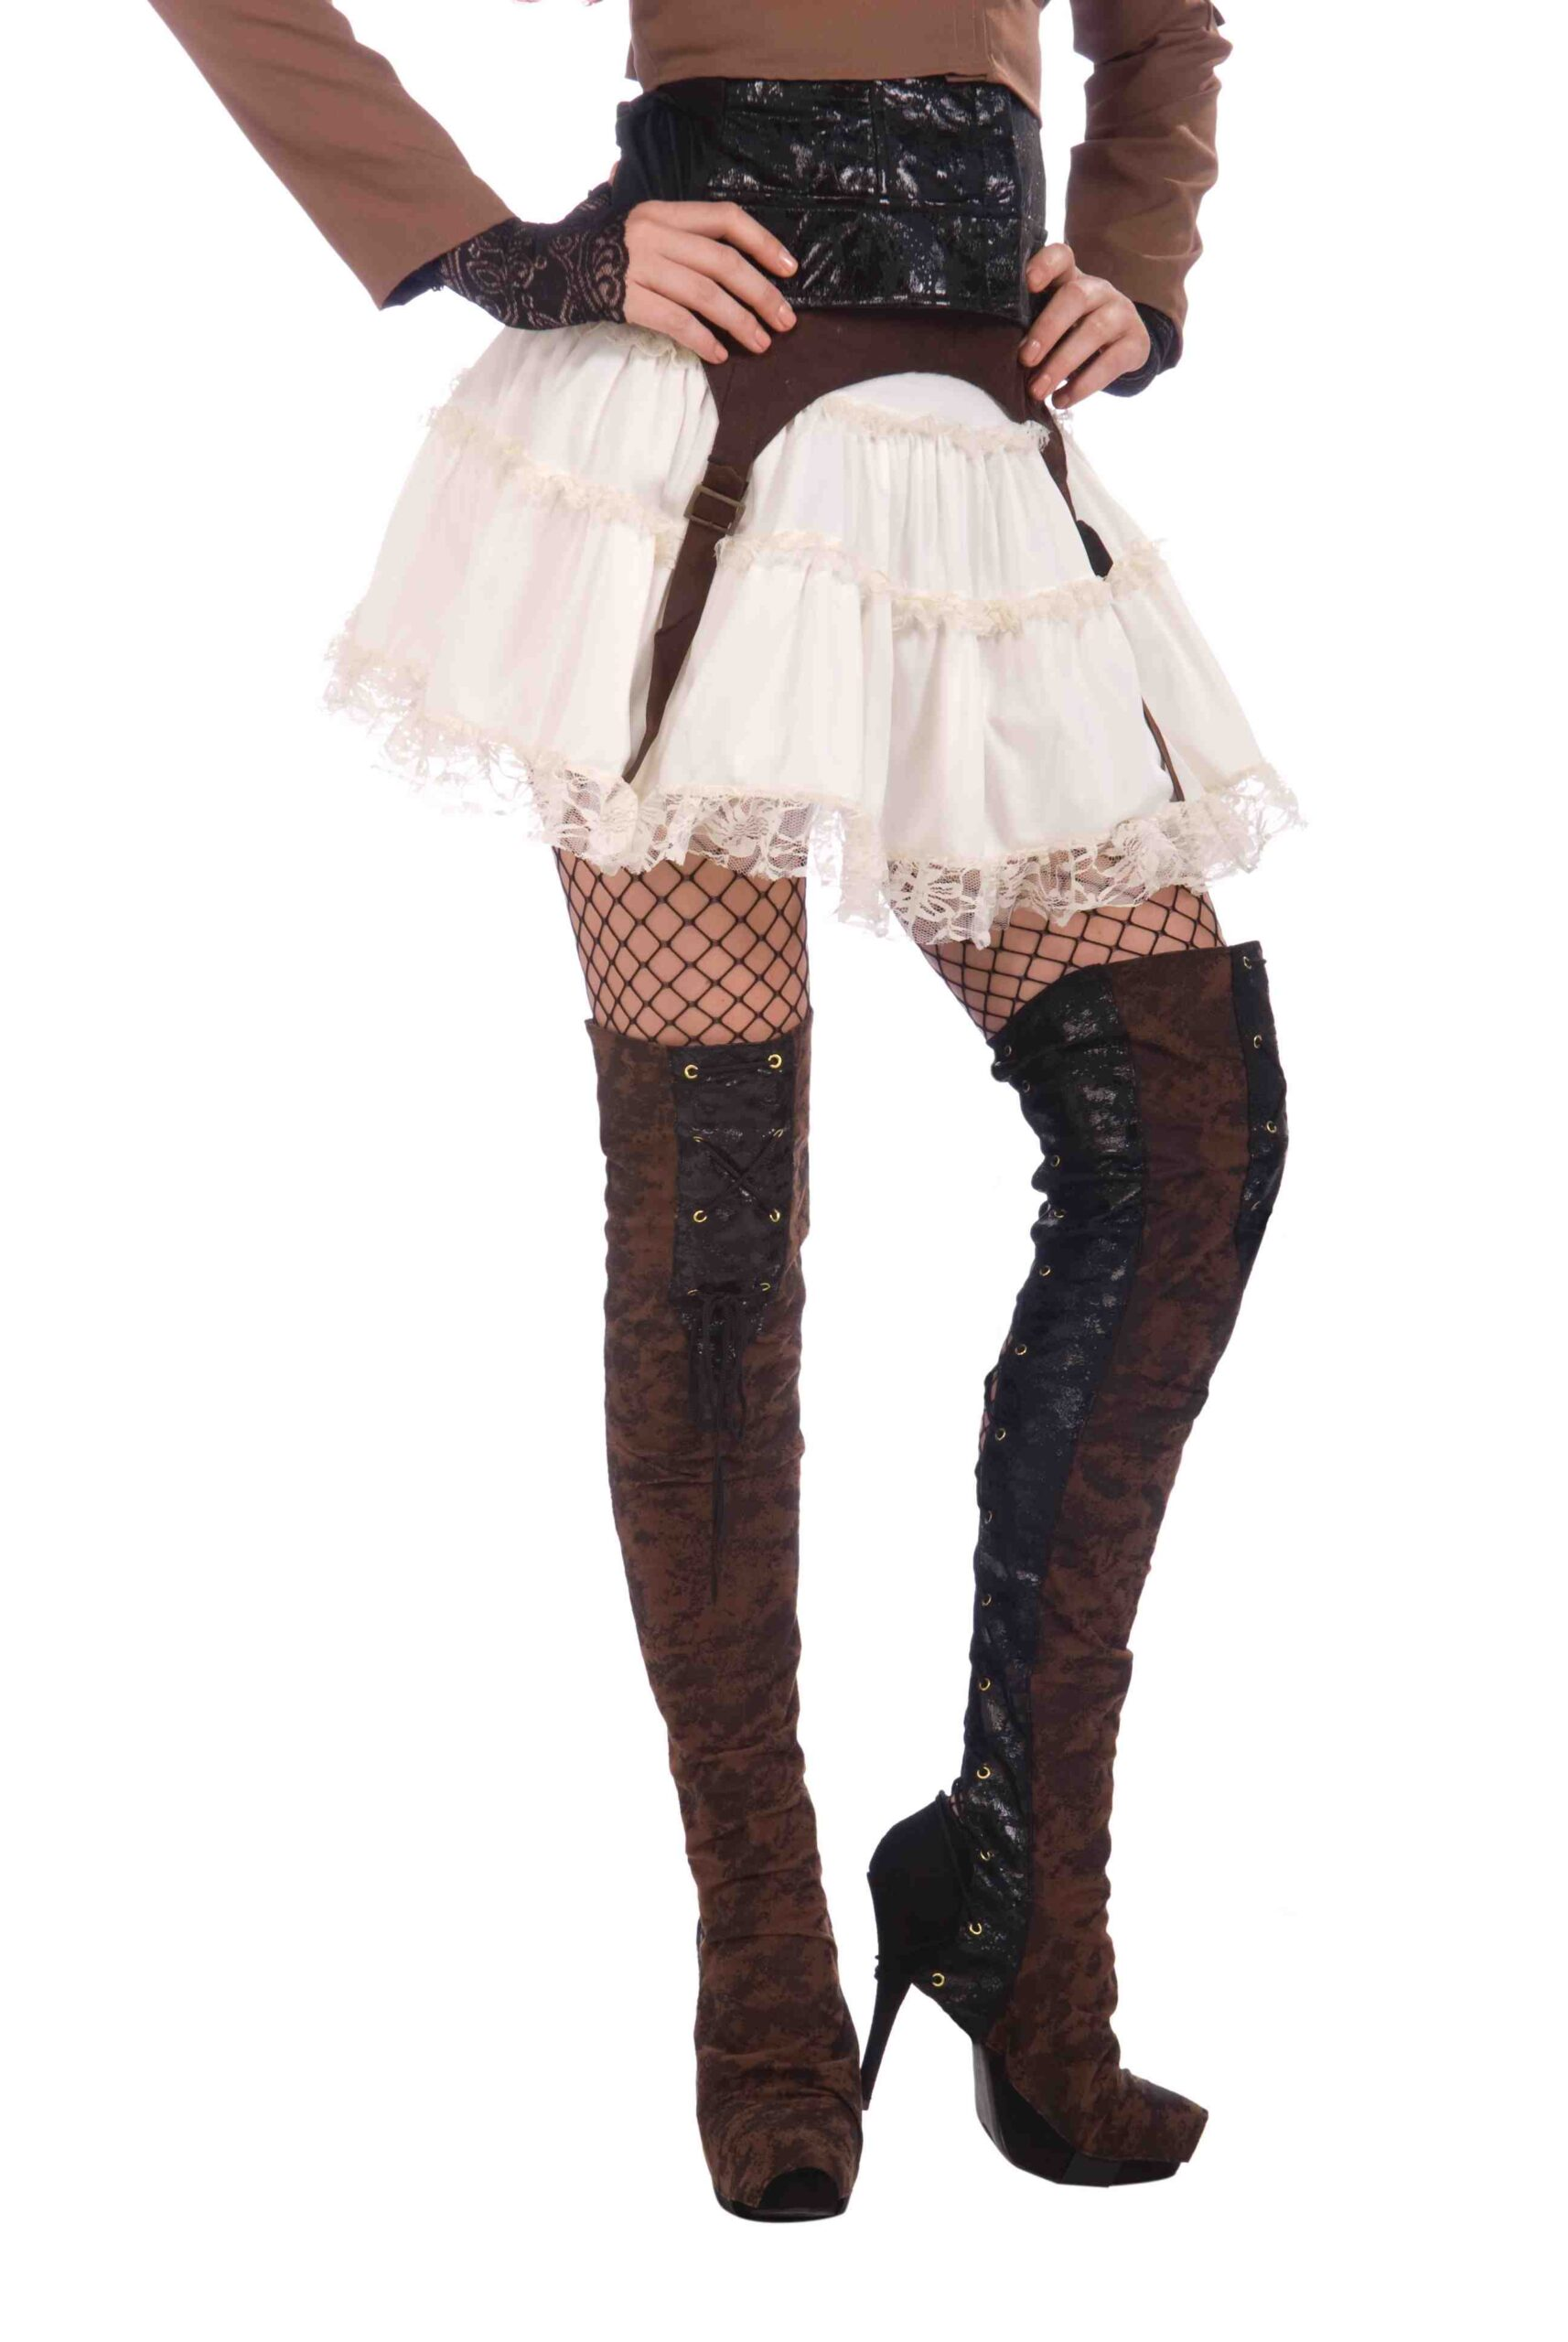 adult female in hip stiletto boots with fishnet stockings hands on hips and garter belts and short lace skirt costume